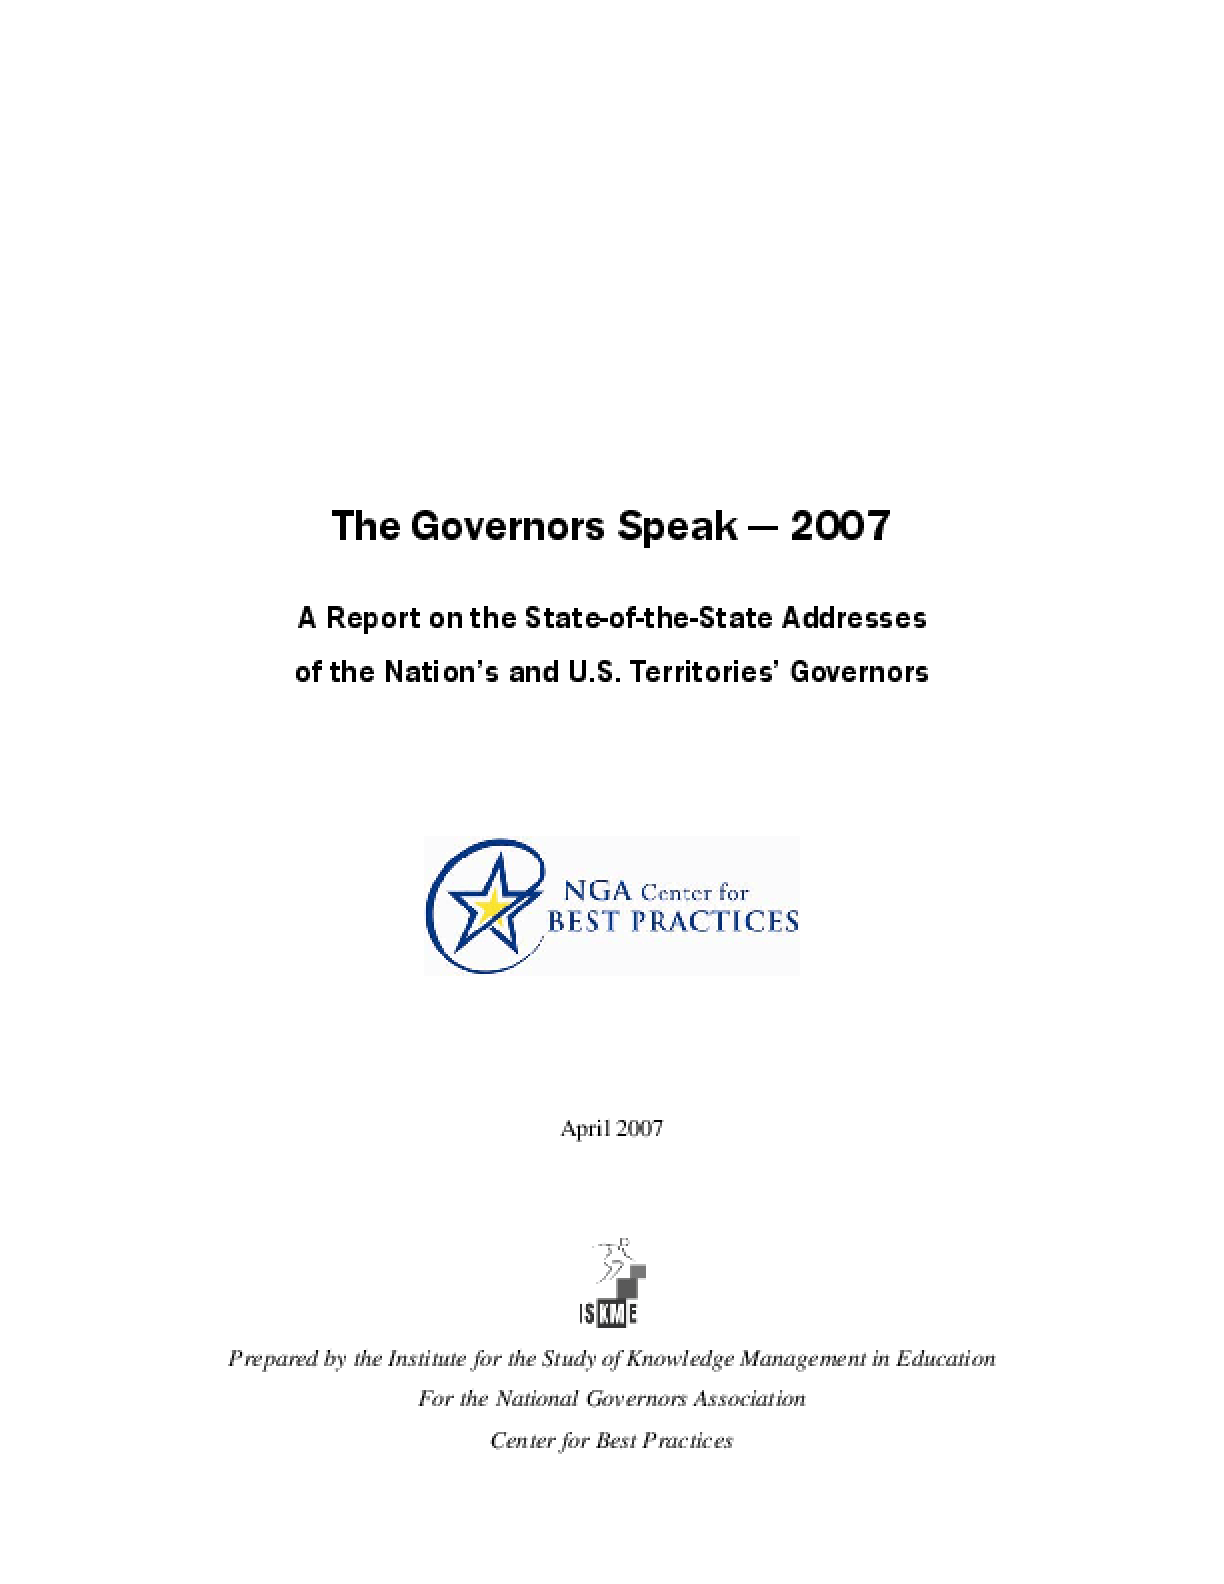 The Governors Speak 2007: A Report on the State-of-the-State Addresses of the Nation's and U.S. Territories' Governors